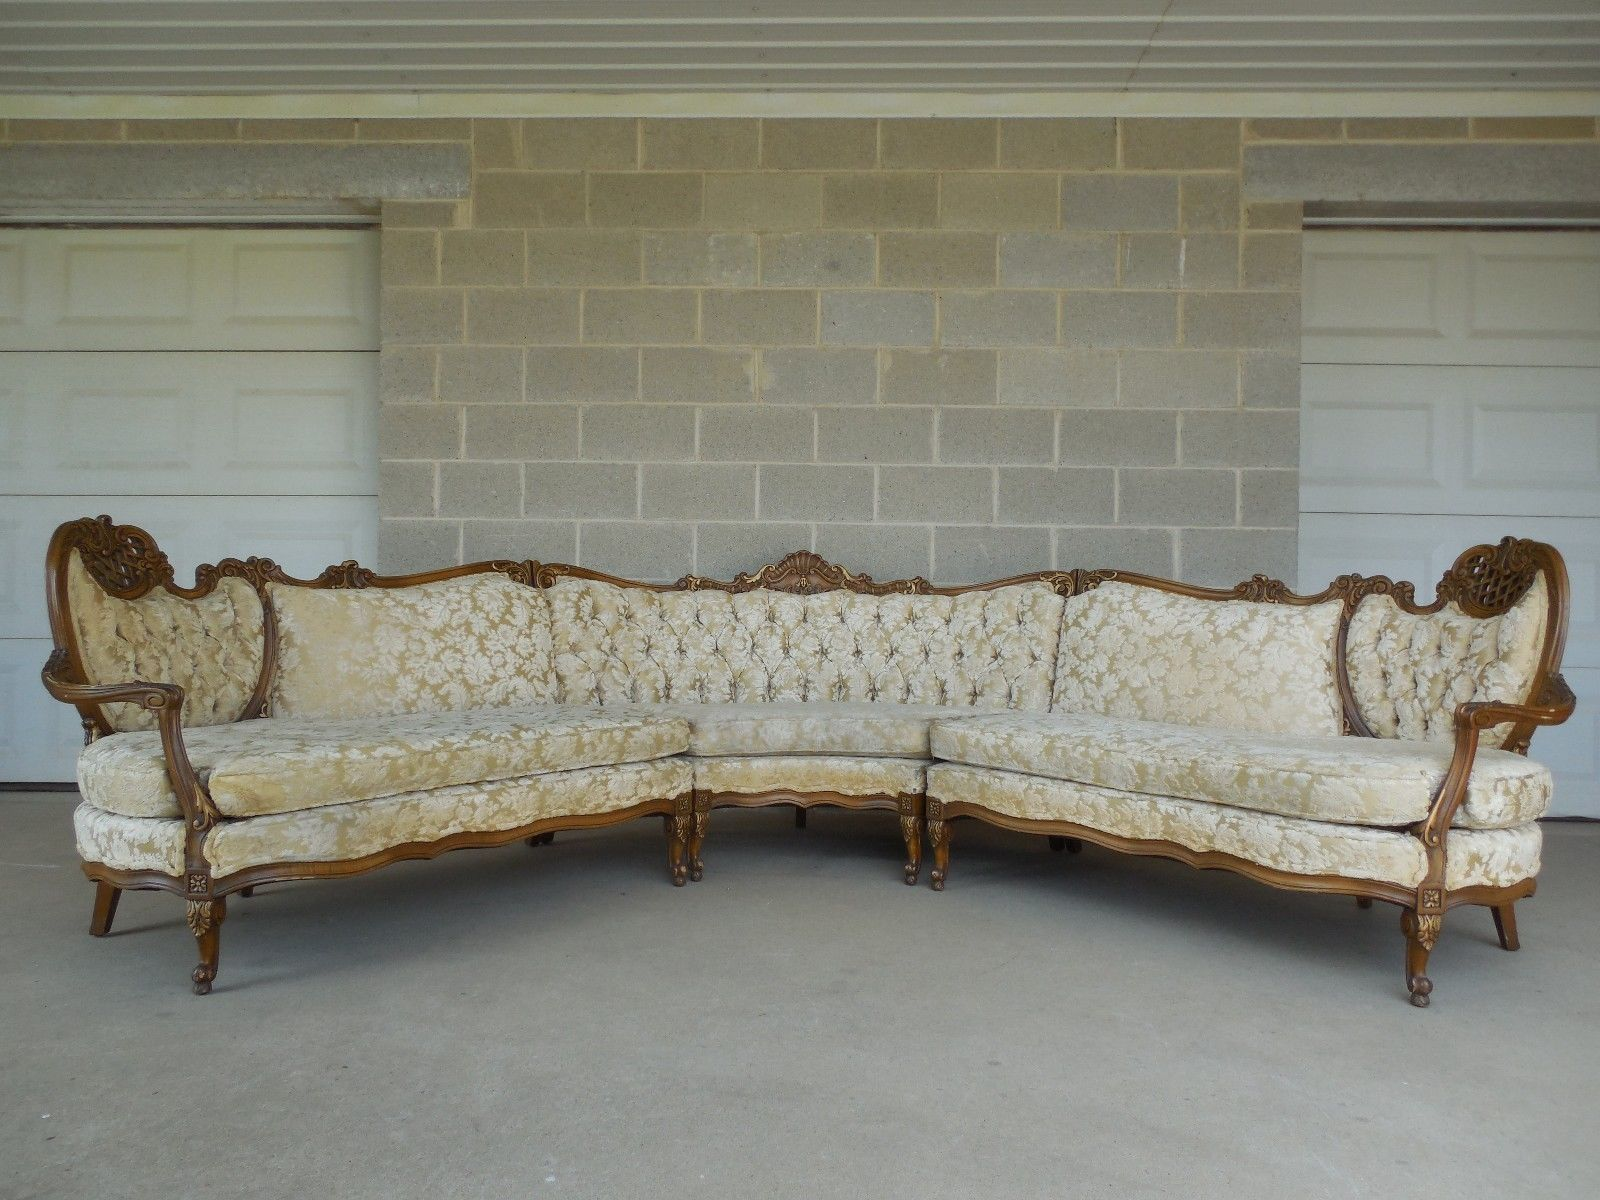 244 best antique couch images on Pinterest